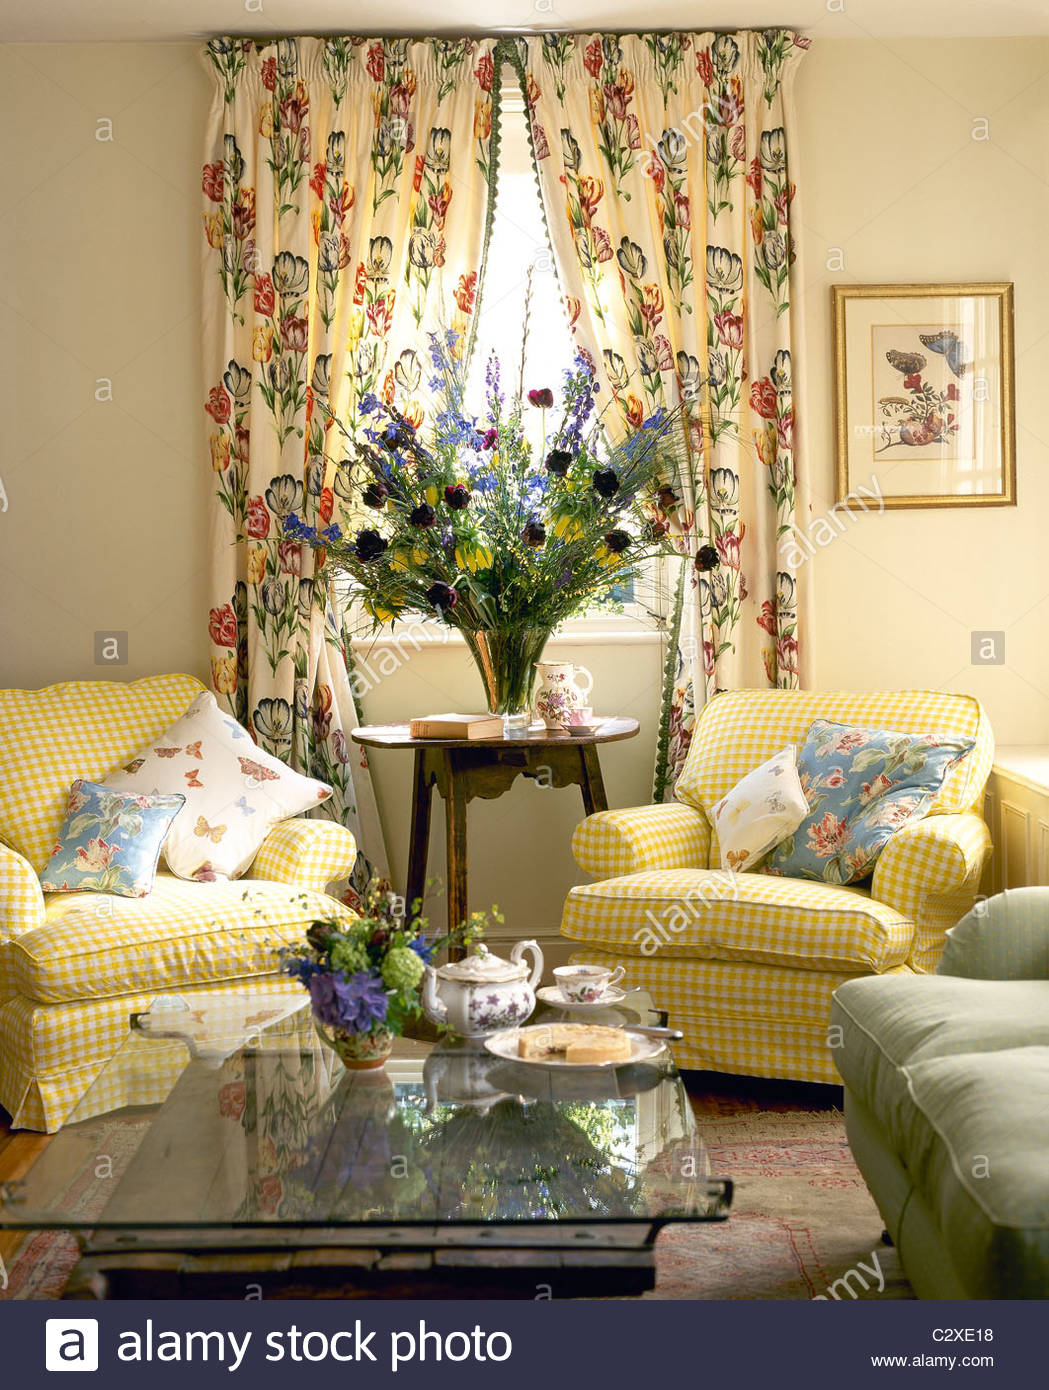 Traditional Country Style Sitting Room With Floral Curtains Stock